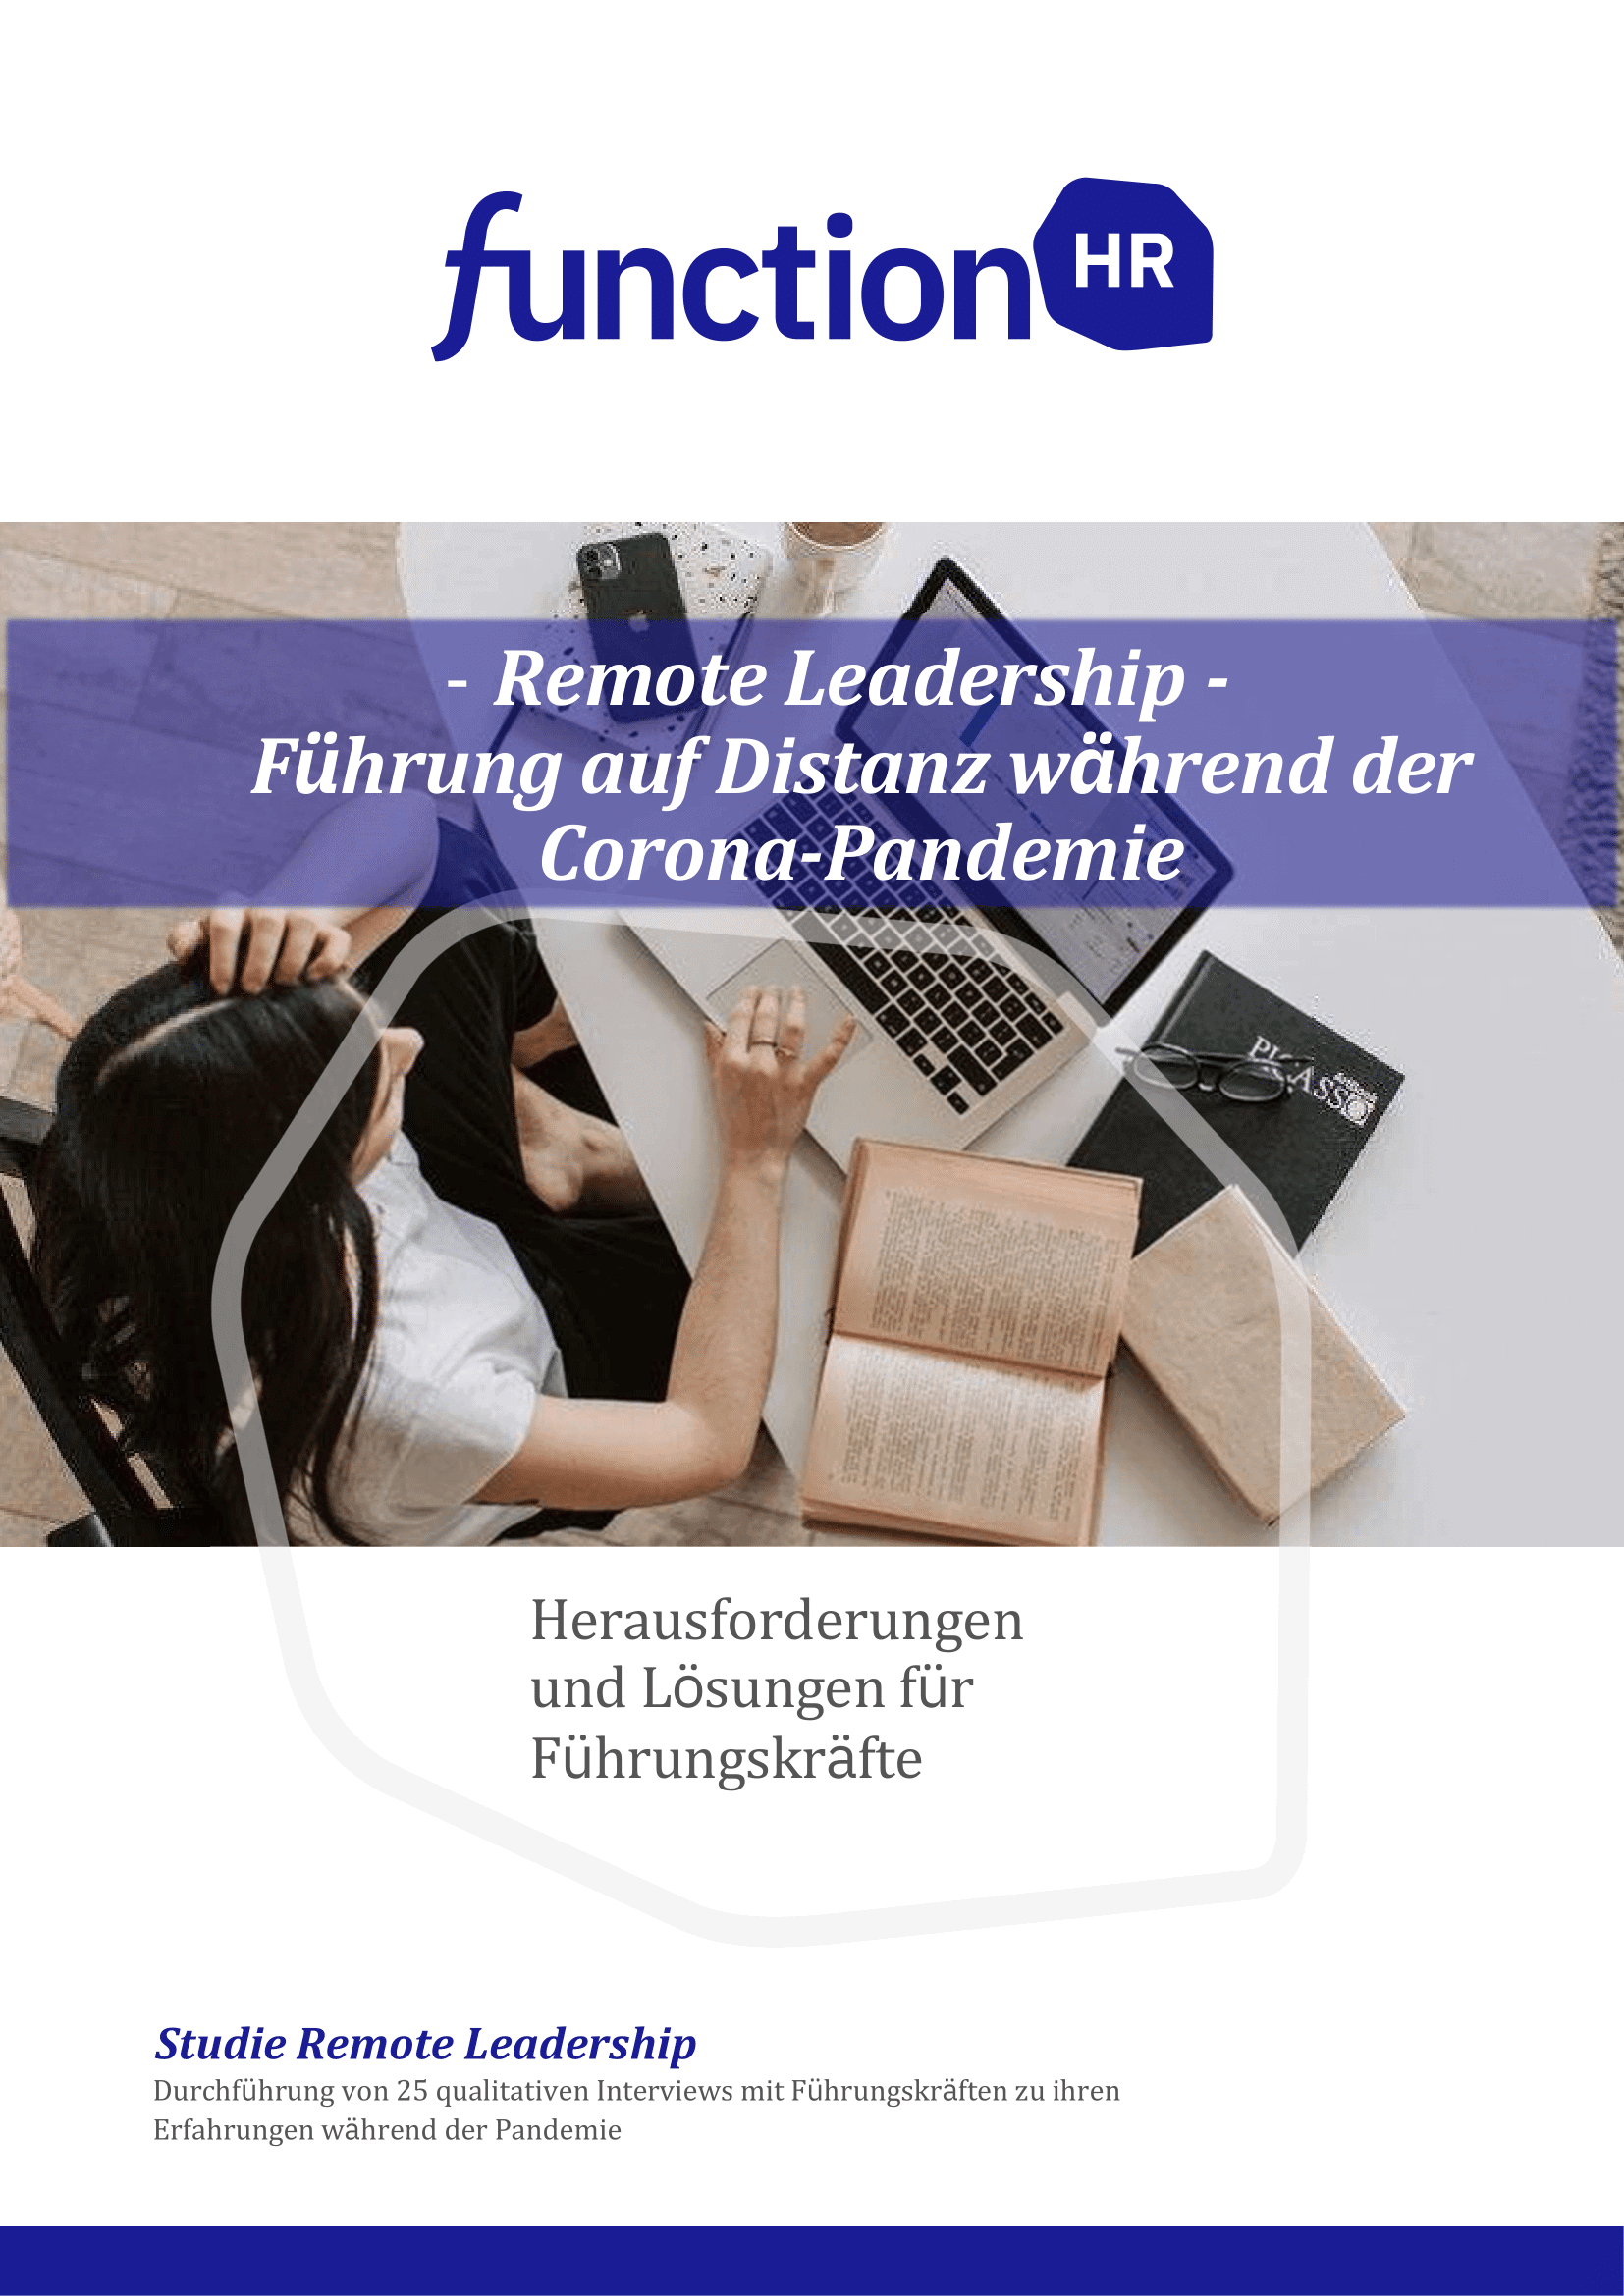 Remote Leadership Studie